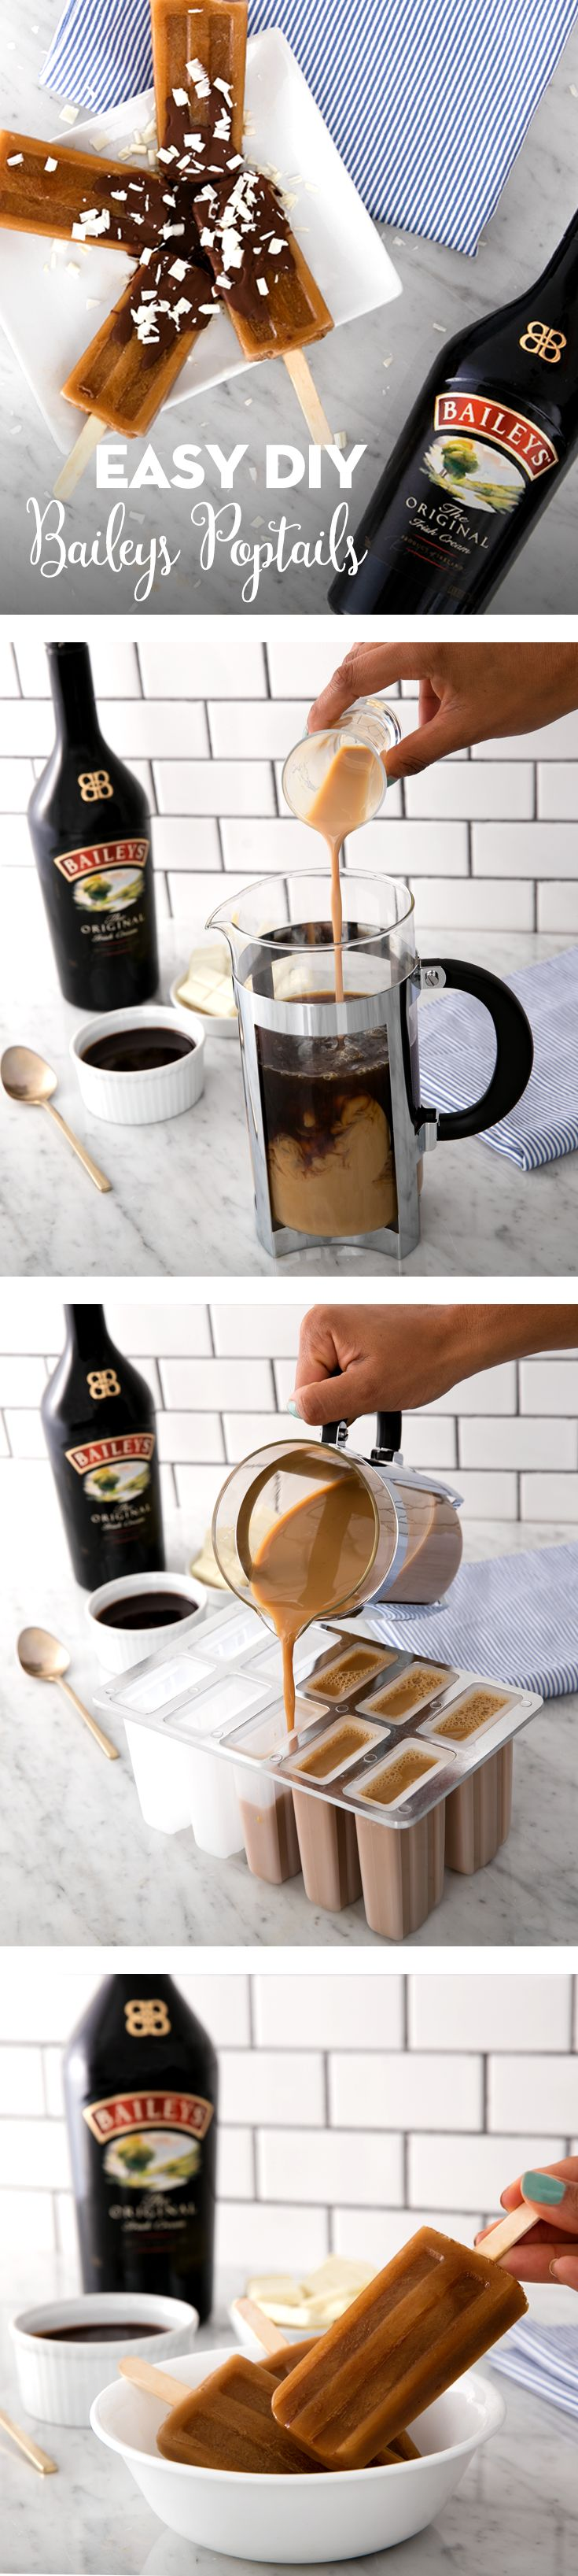 Ready for some summer fun? Keep cool during the warmer months with these easy to make Baileys and coffee popsicles. If you love Baileys, iced coffee, and all things frozen—you should definitely give these poptails a try. Your guests will enjoy the surprise twist on traditional cocktails at your party or brunch!